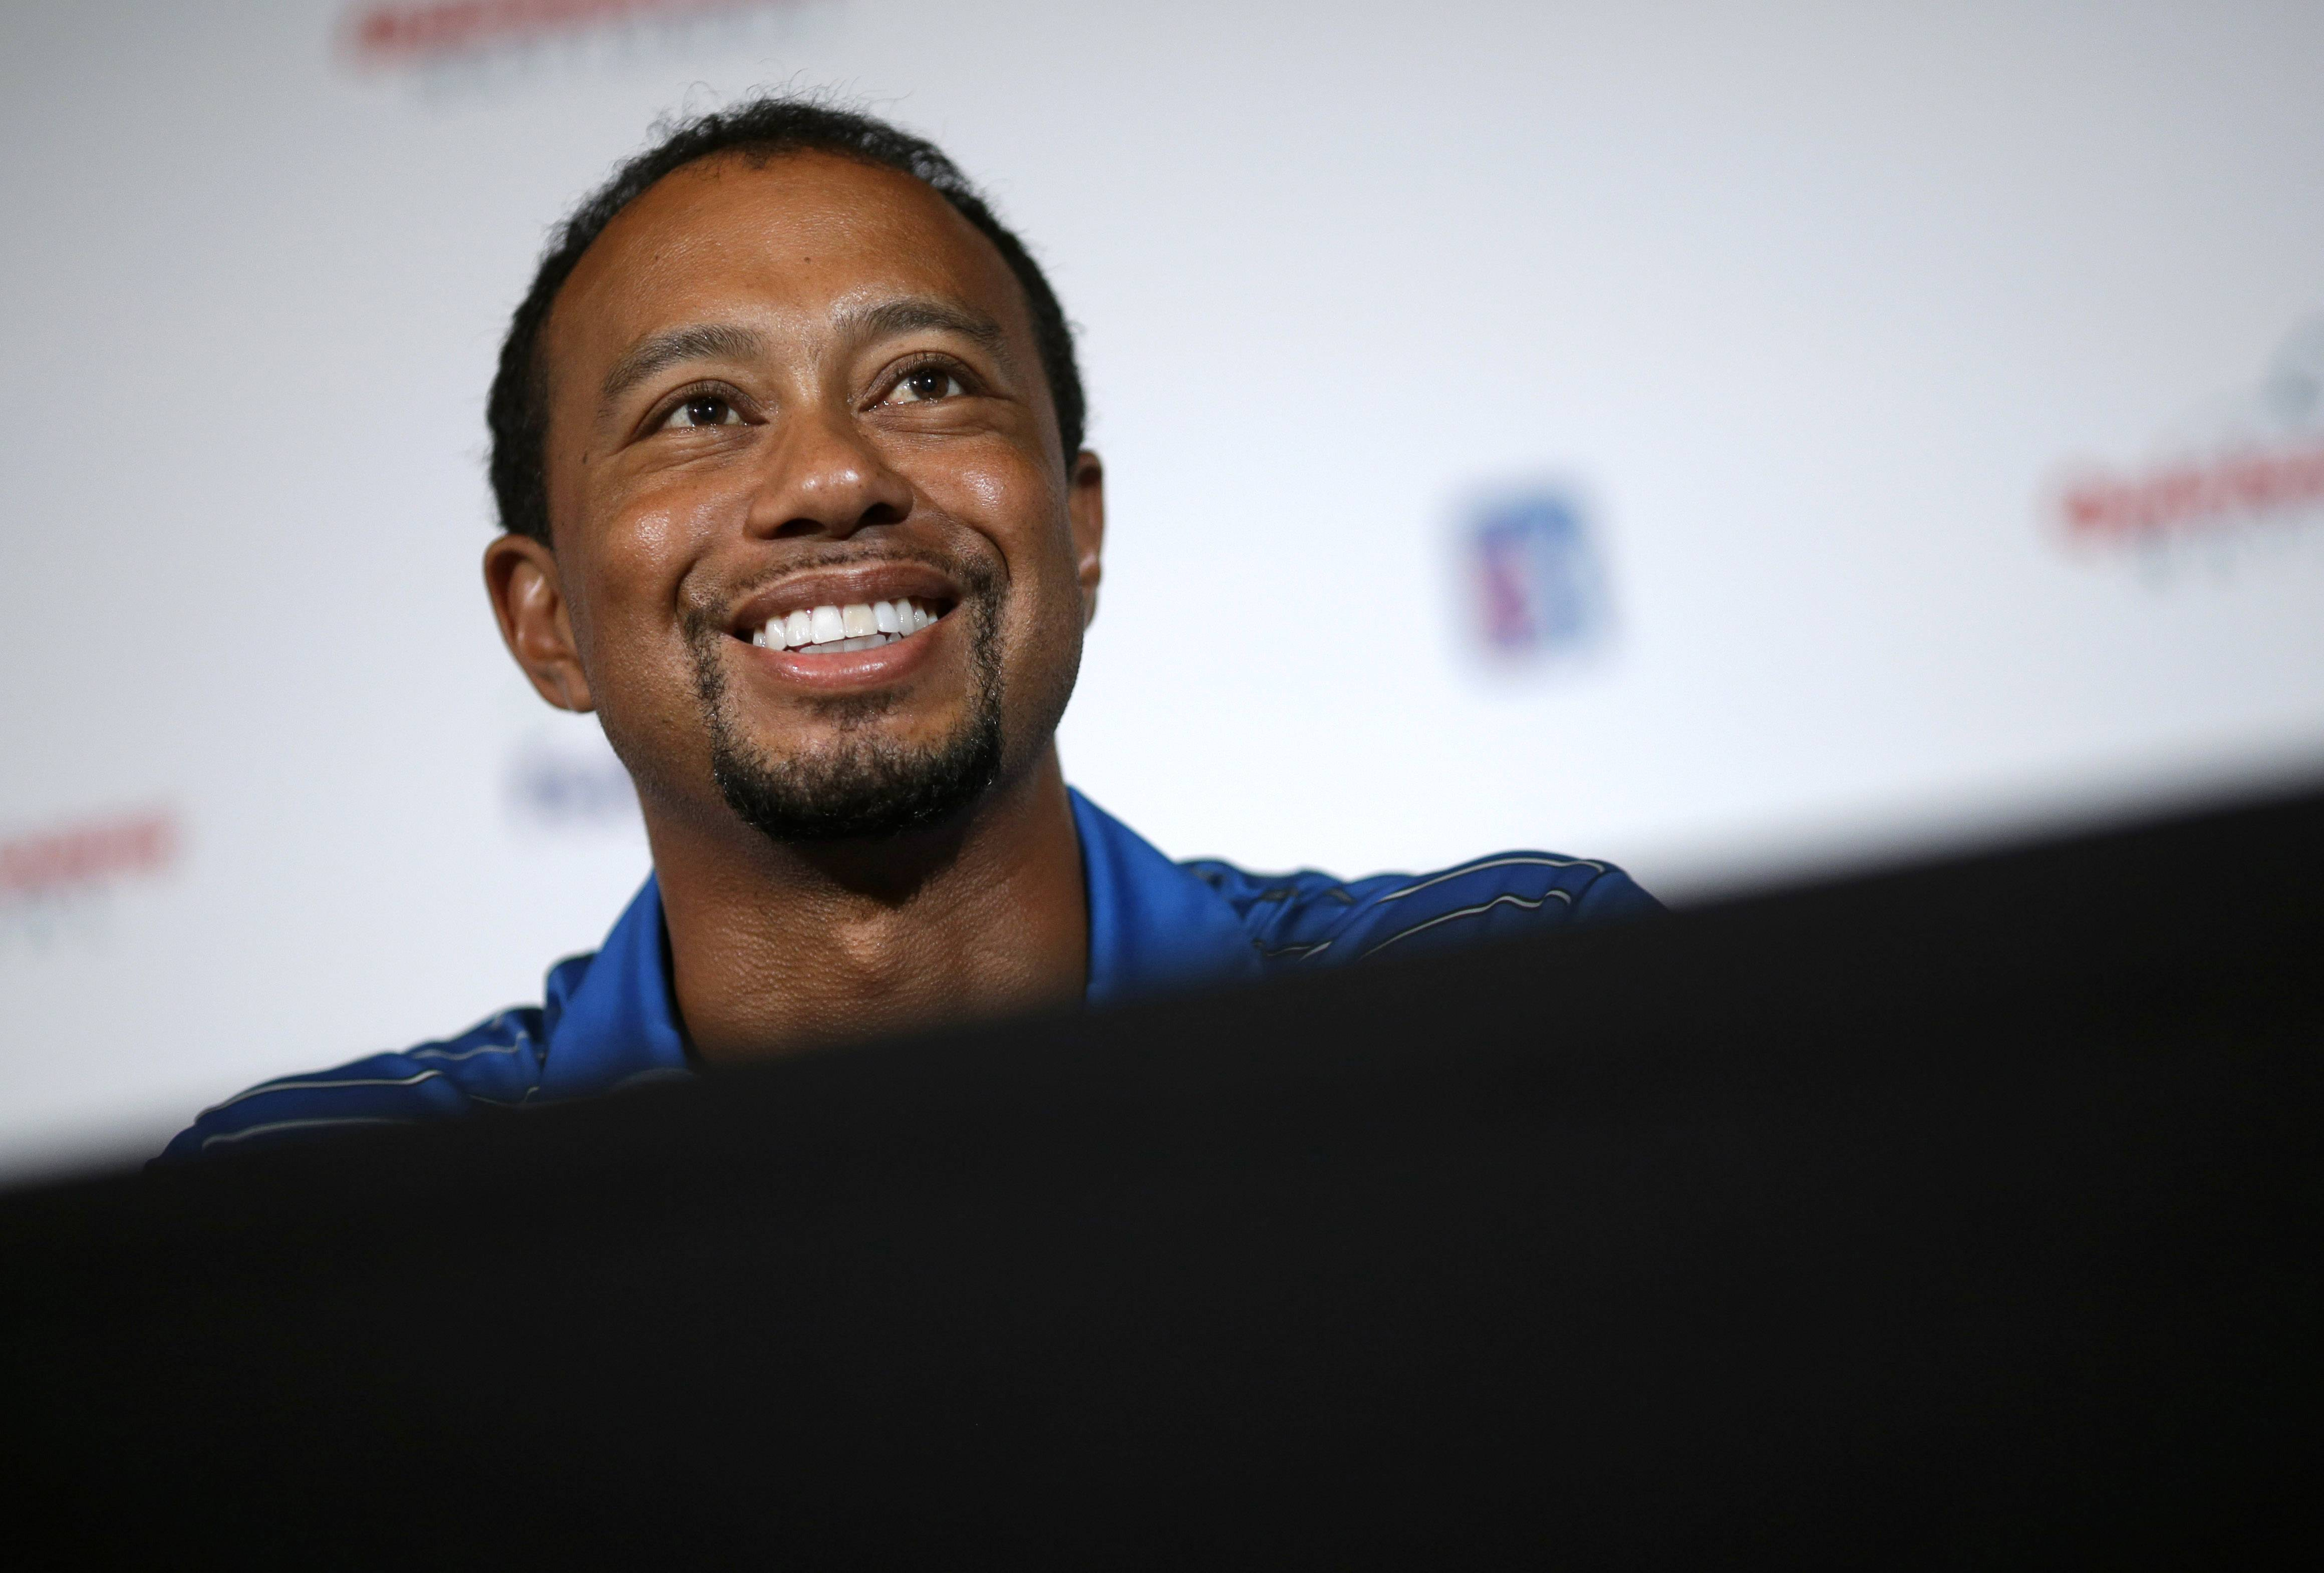 Golfer Tiger Woods speaks at a Quicken Loans National PGA tournament media day news conference Monday at Congressional Country Club in Bethesda, Md. Woods said his back injury was so debilitating that it caused him to doubt whether he would play golf again. While the surgery he had March 31 erased those doubts, he still has no timetable for his return.